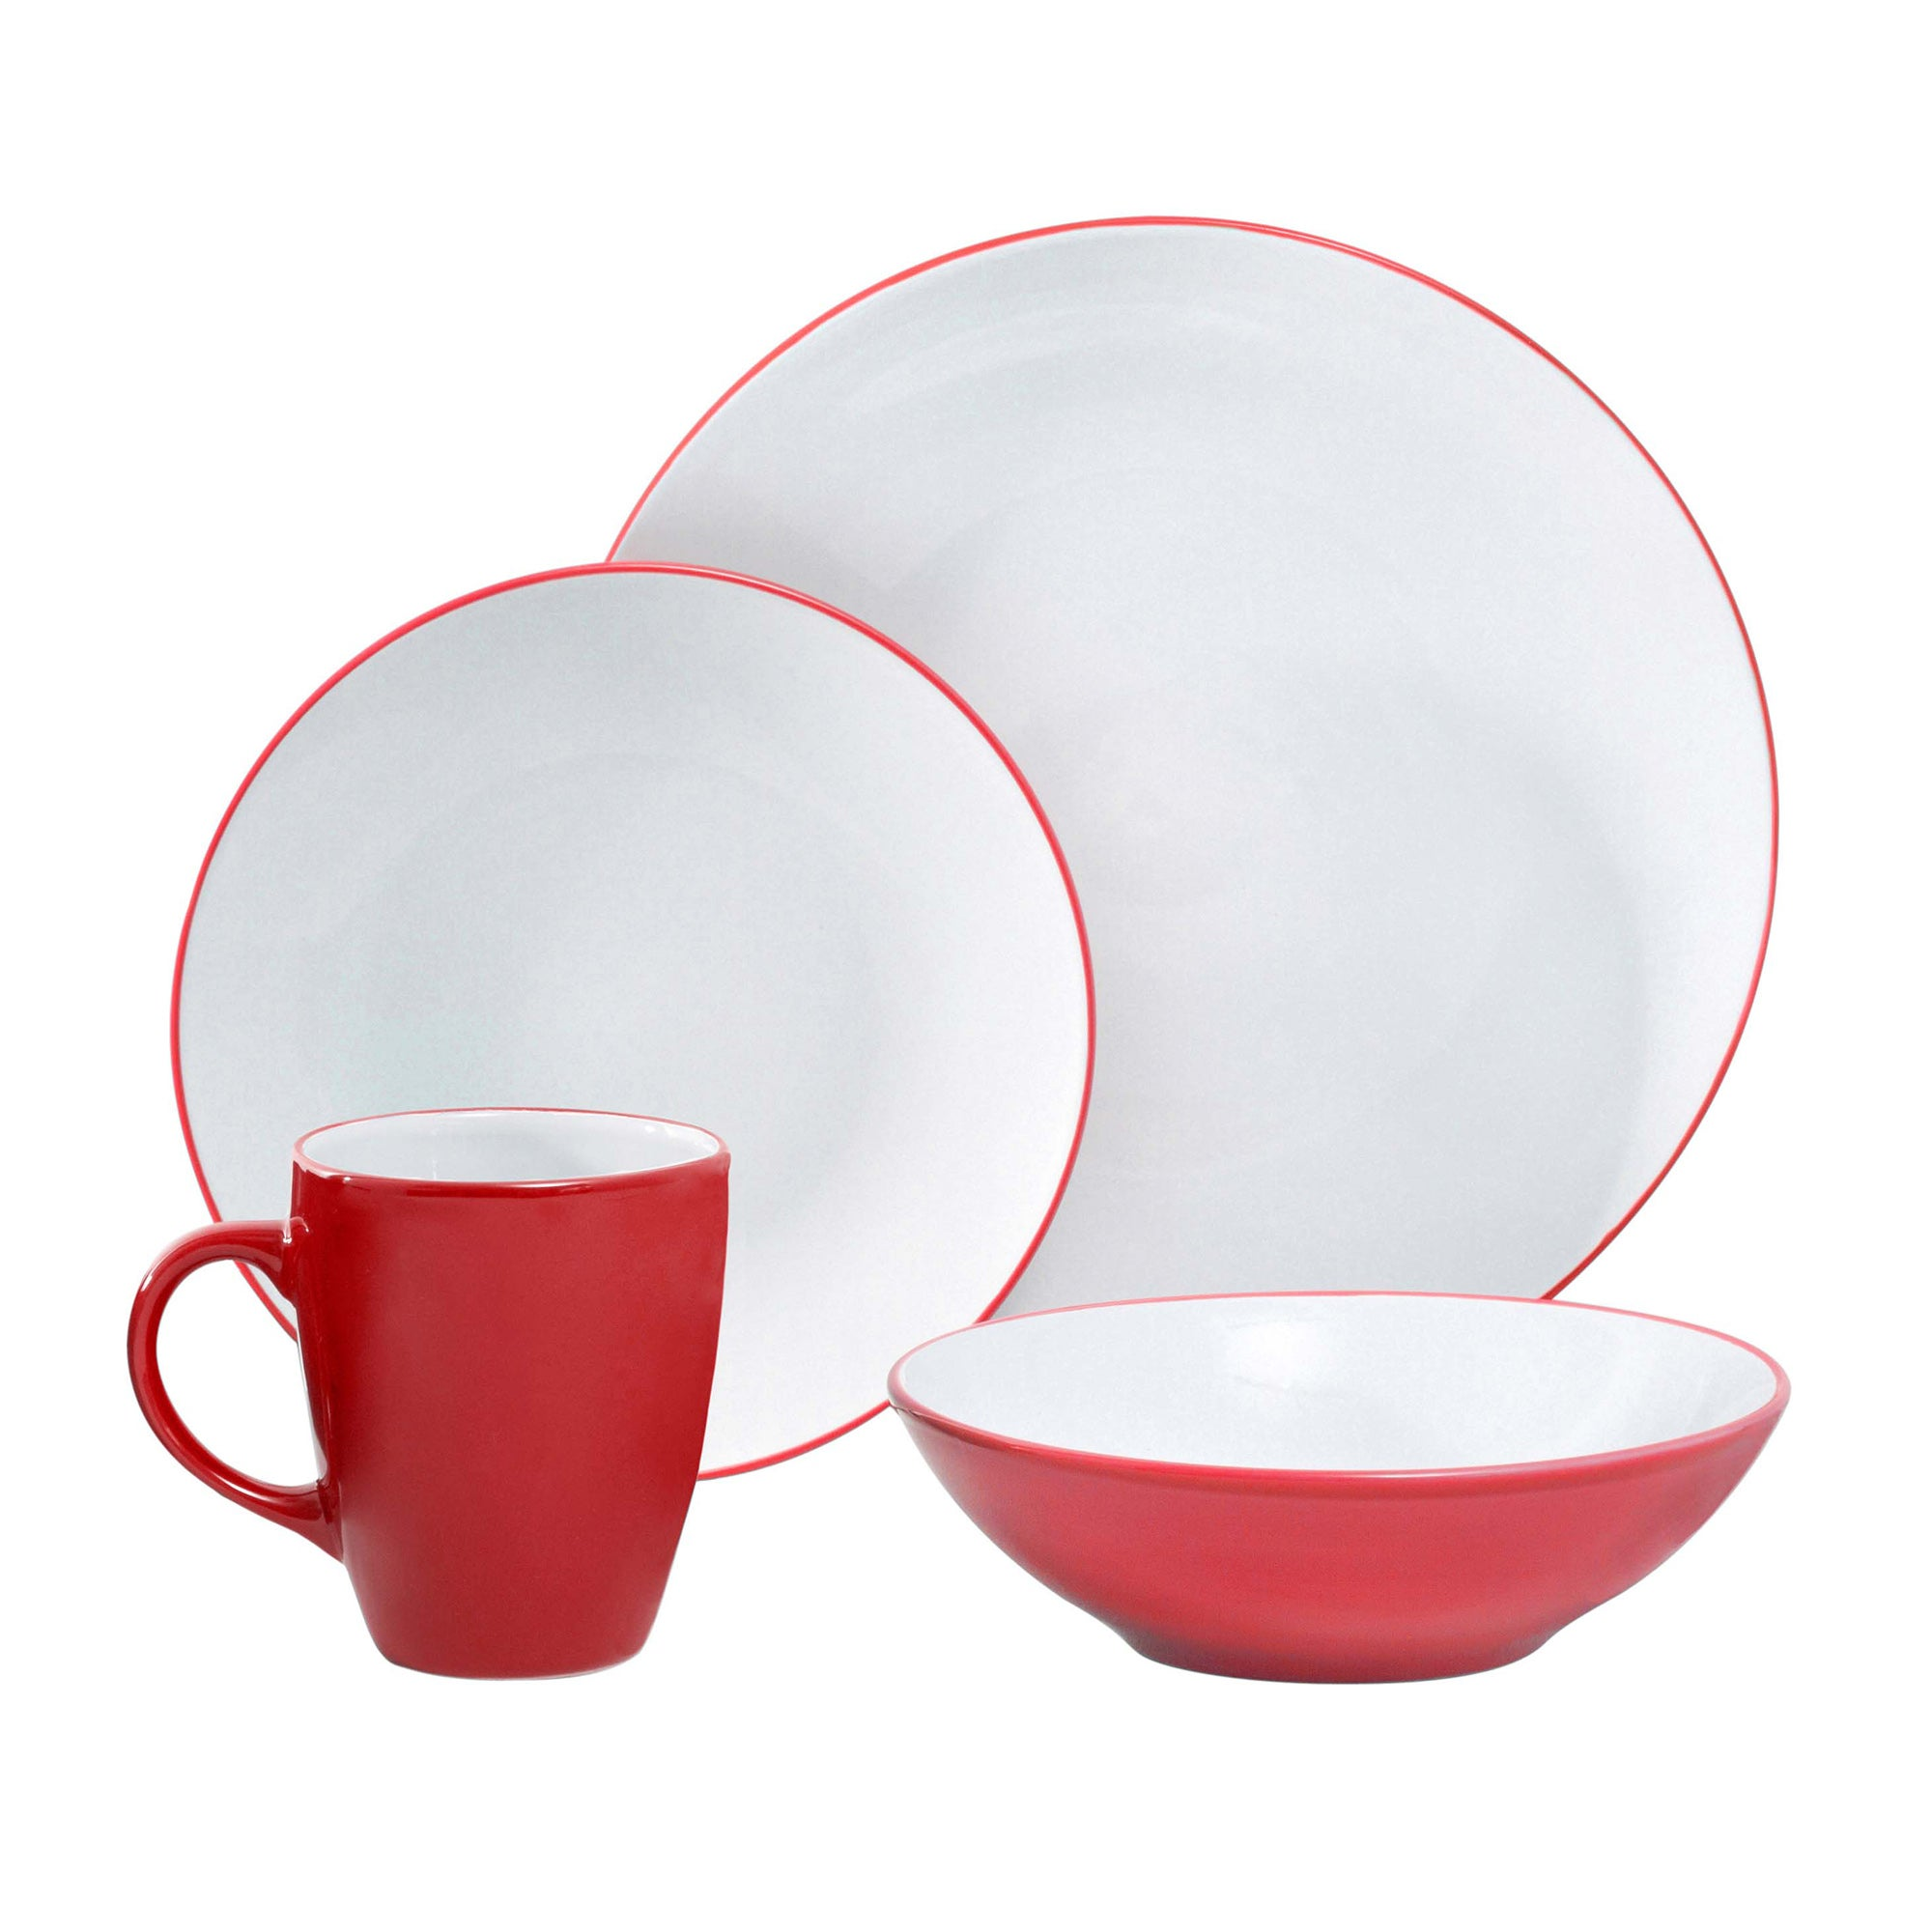 Image of Spectrum 16 Piece Red Dinner Set Red